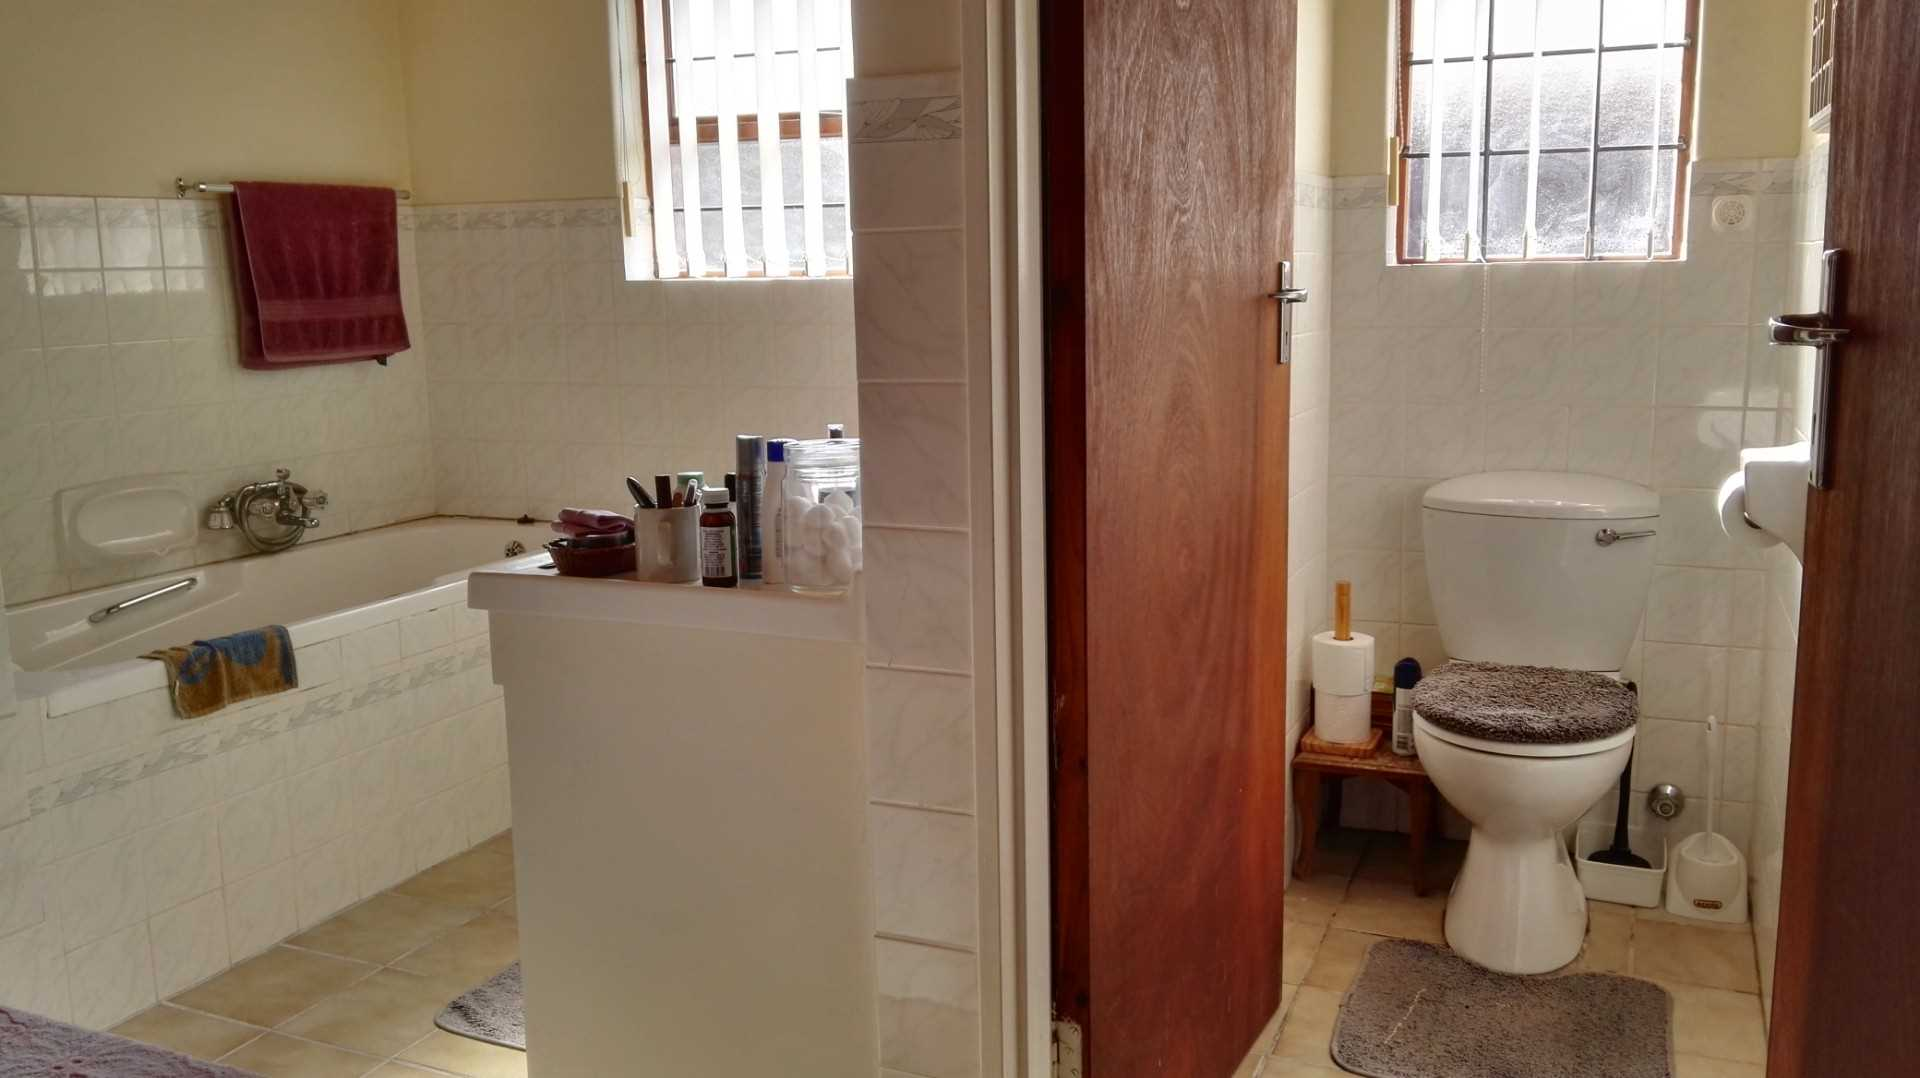 En-suite bathroom for main bedroom with bath, shower, double basin and separate toilet